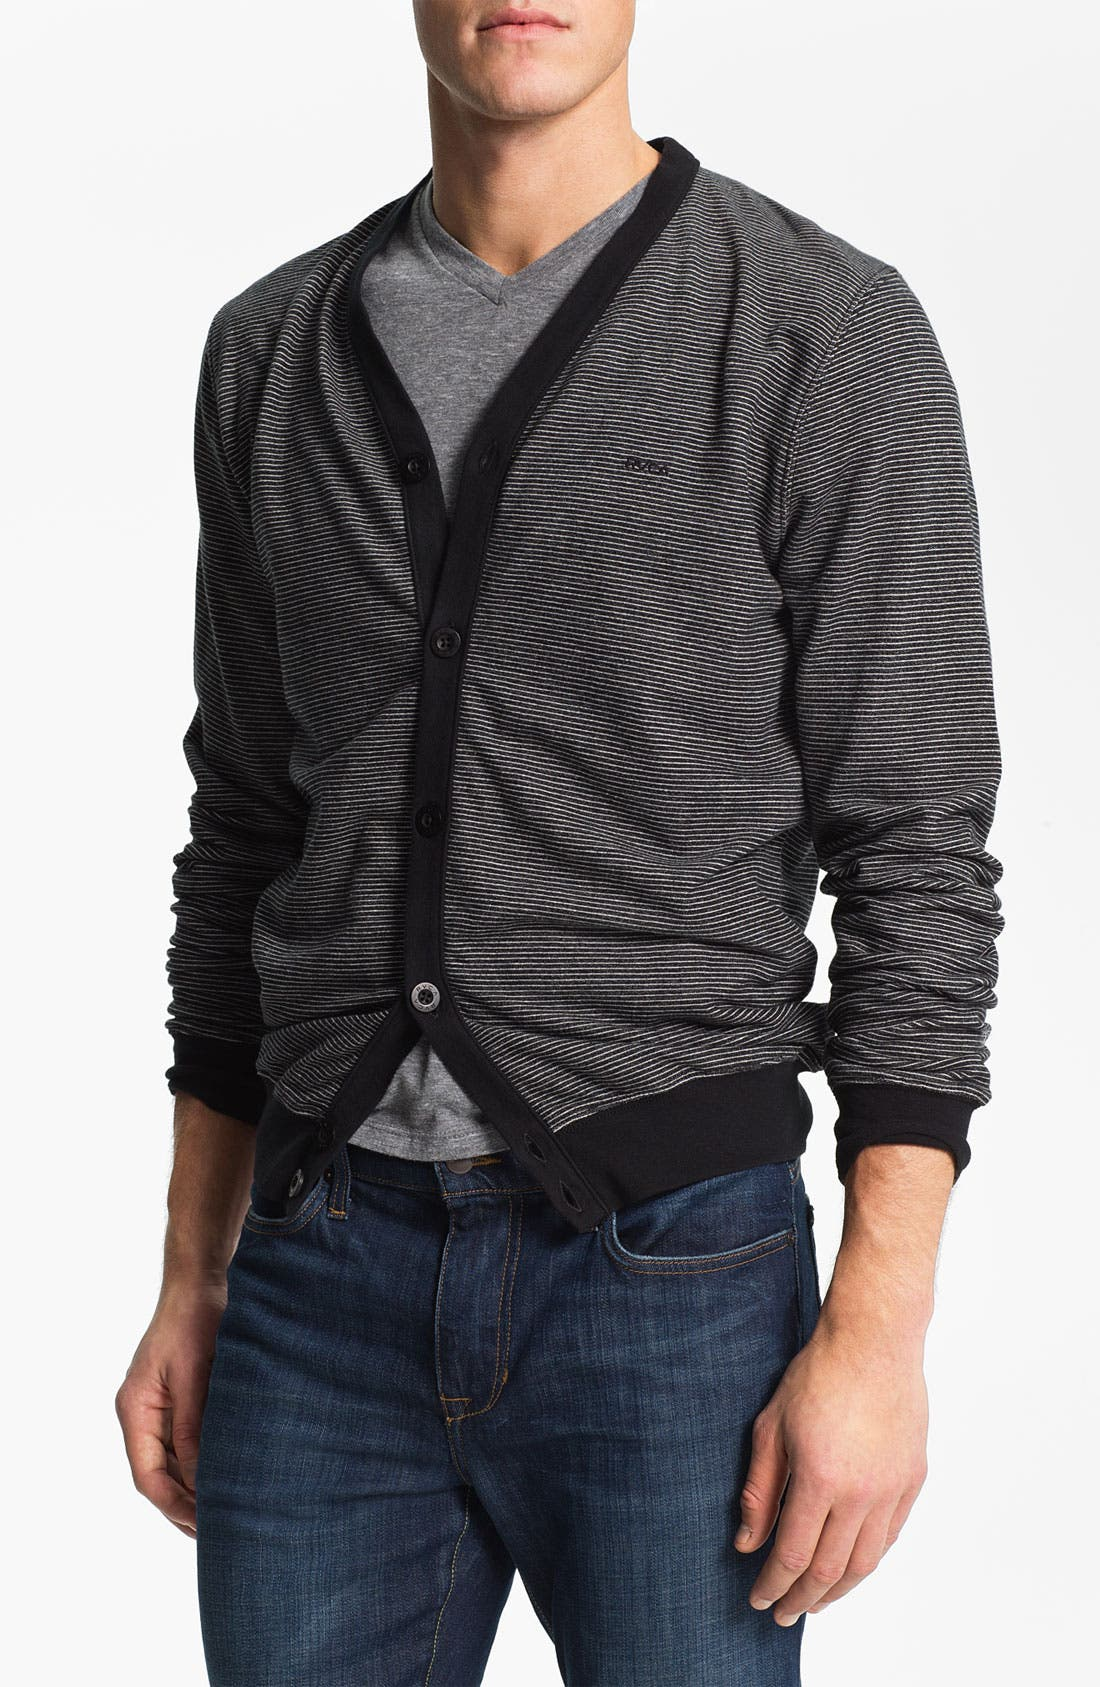 Alternate Image 1 Selected - RVCA 'Skaville' French Terry Cardigan